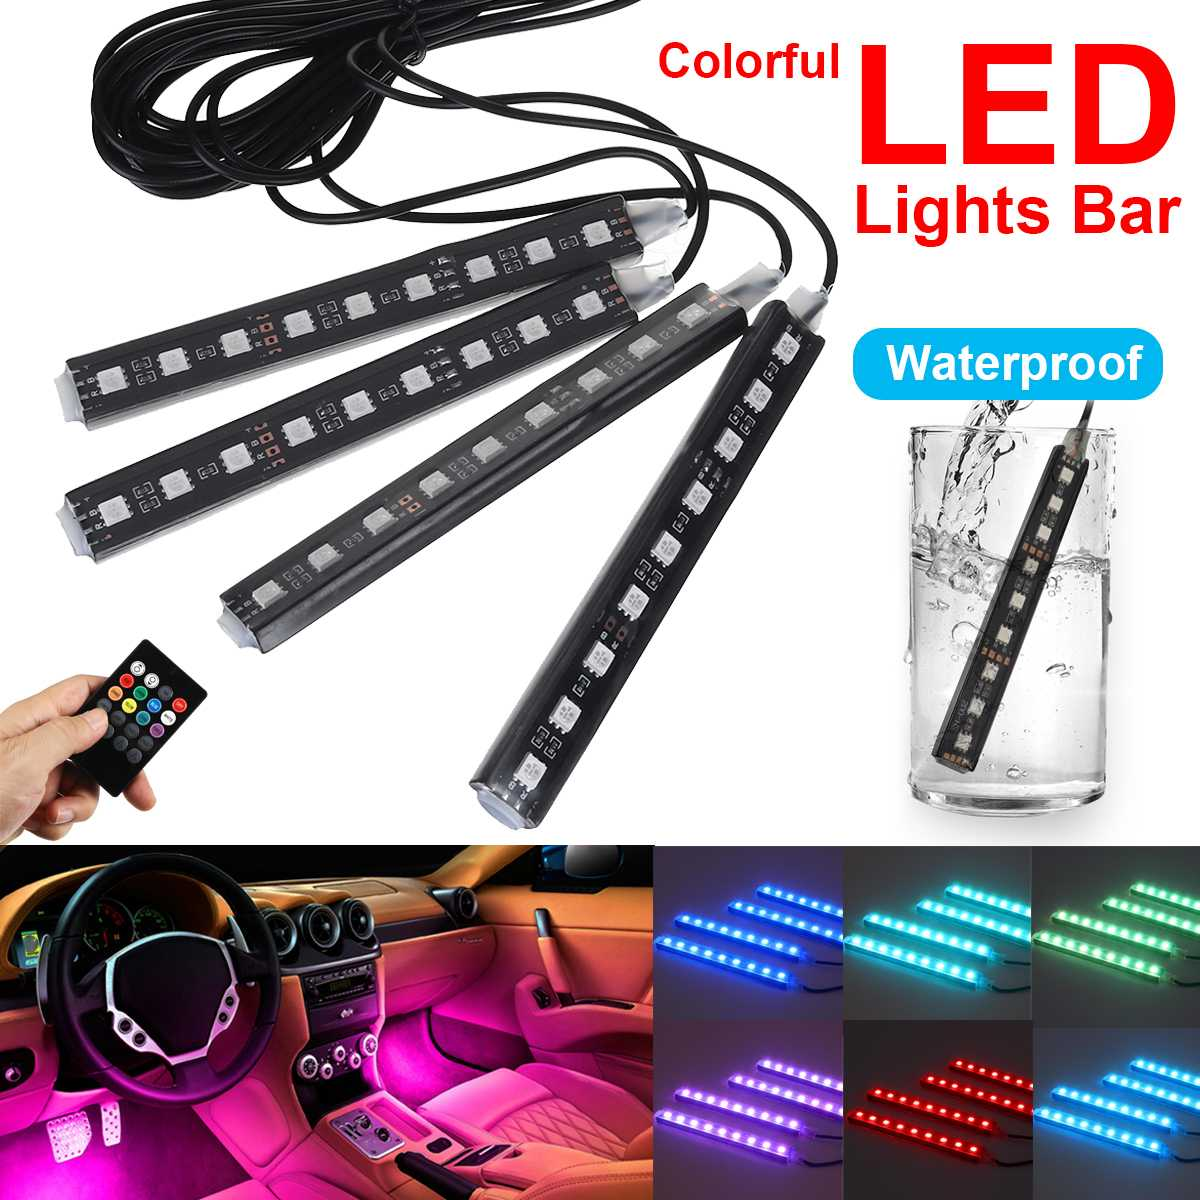 4x 9LED Colorful LED Light Bar Car Interior Floor Remote Control Neon LED RGB Strip Light Colorful Lamp Waterproof Universal